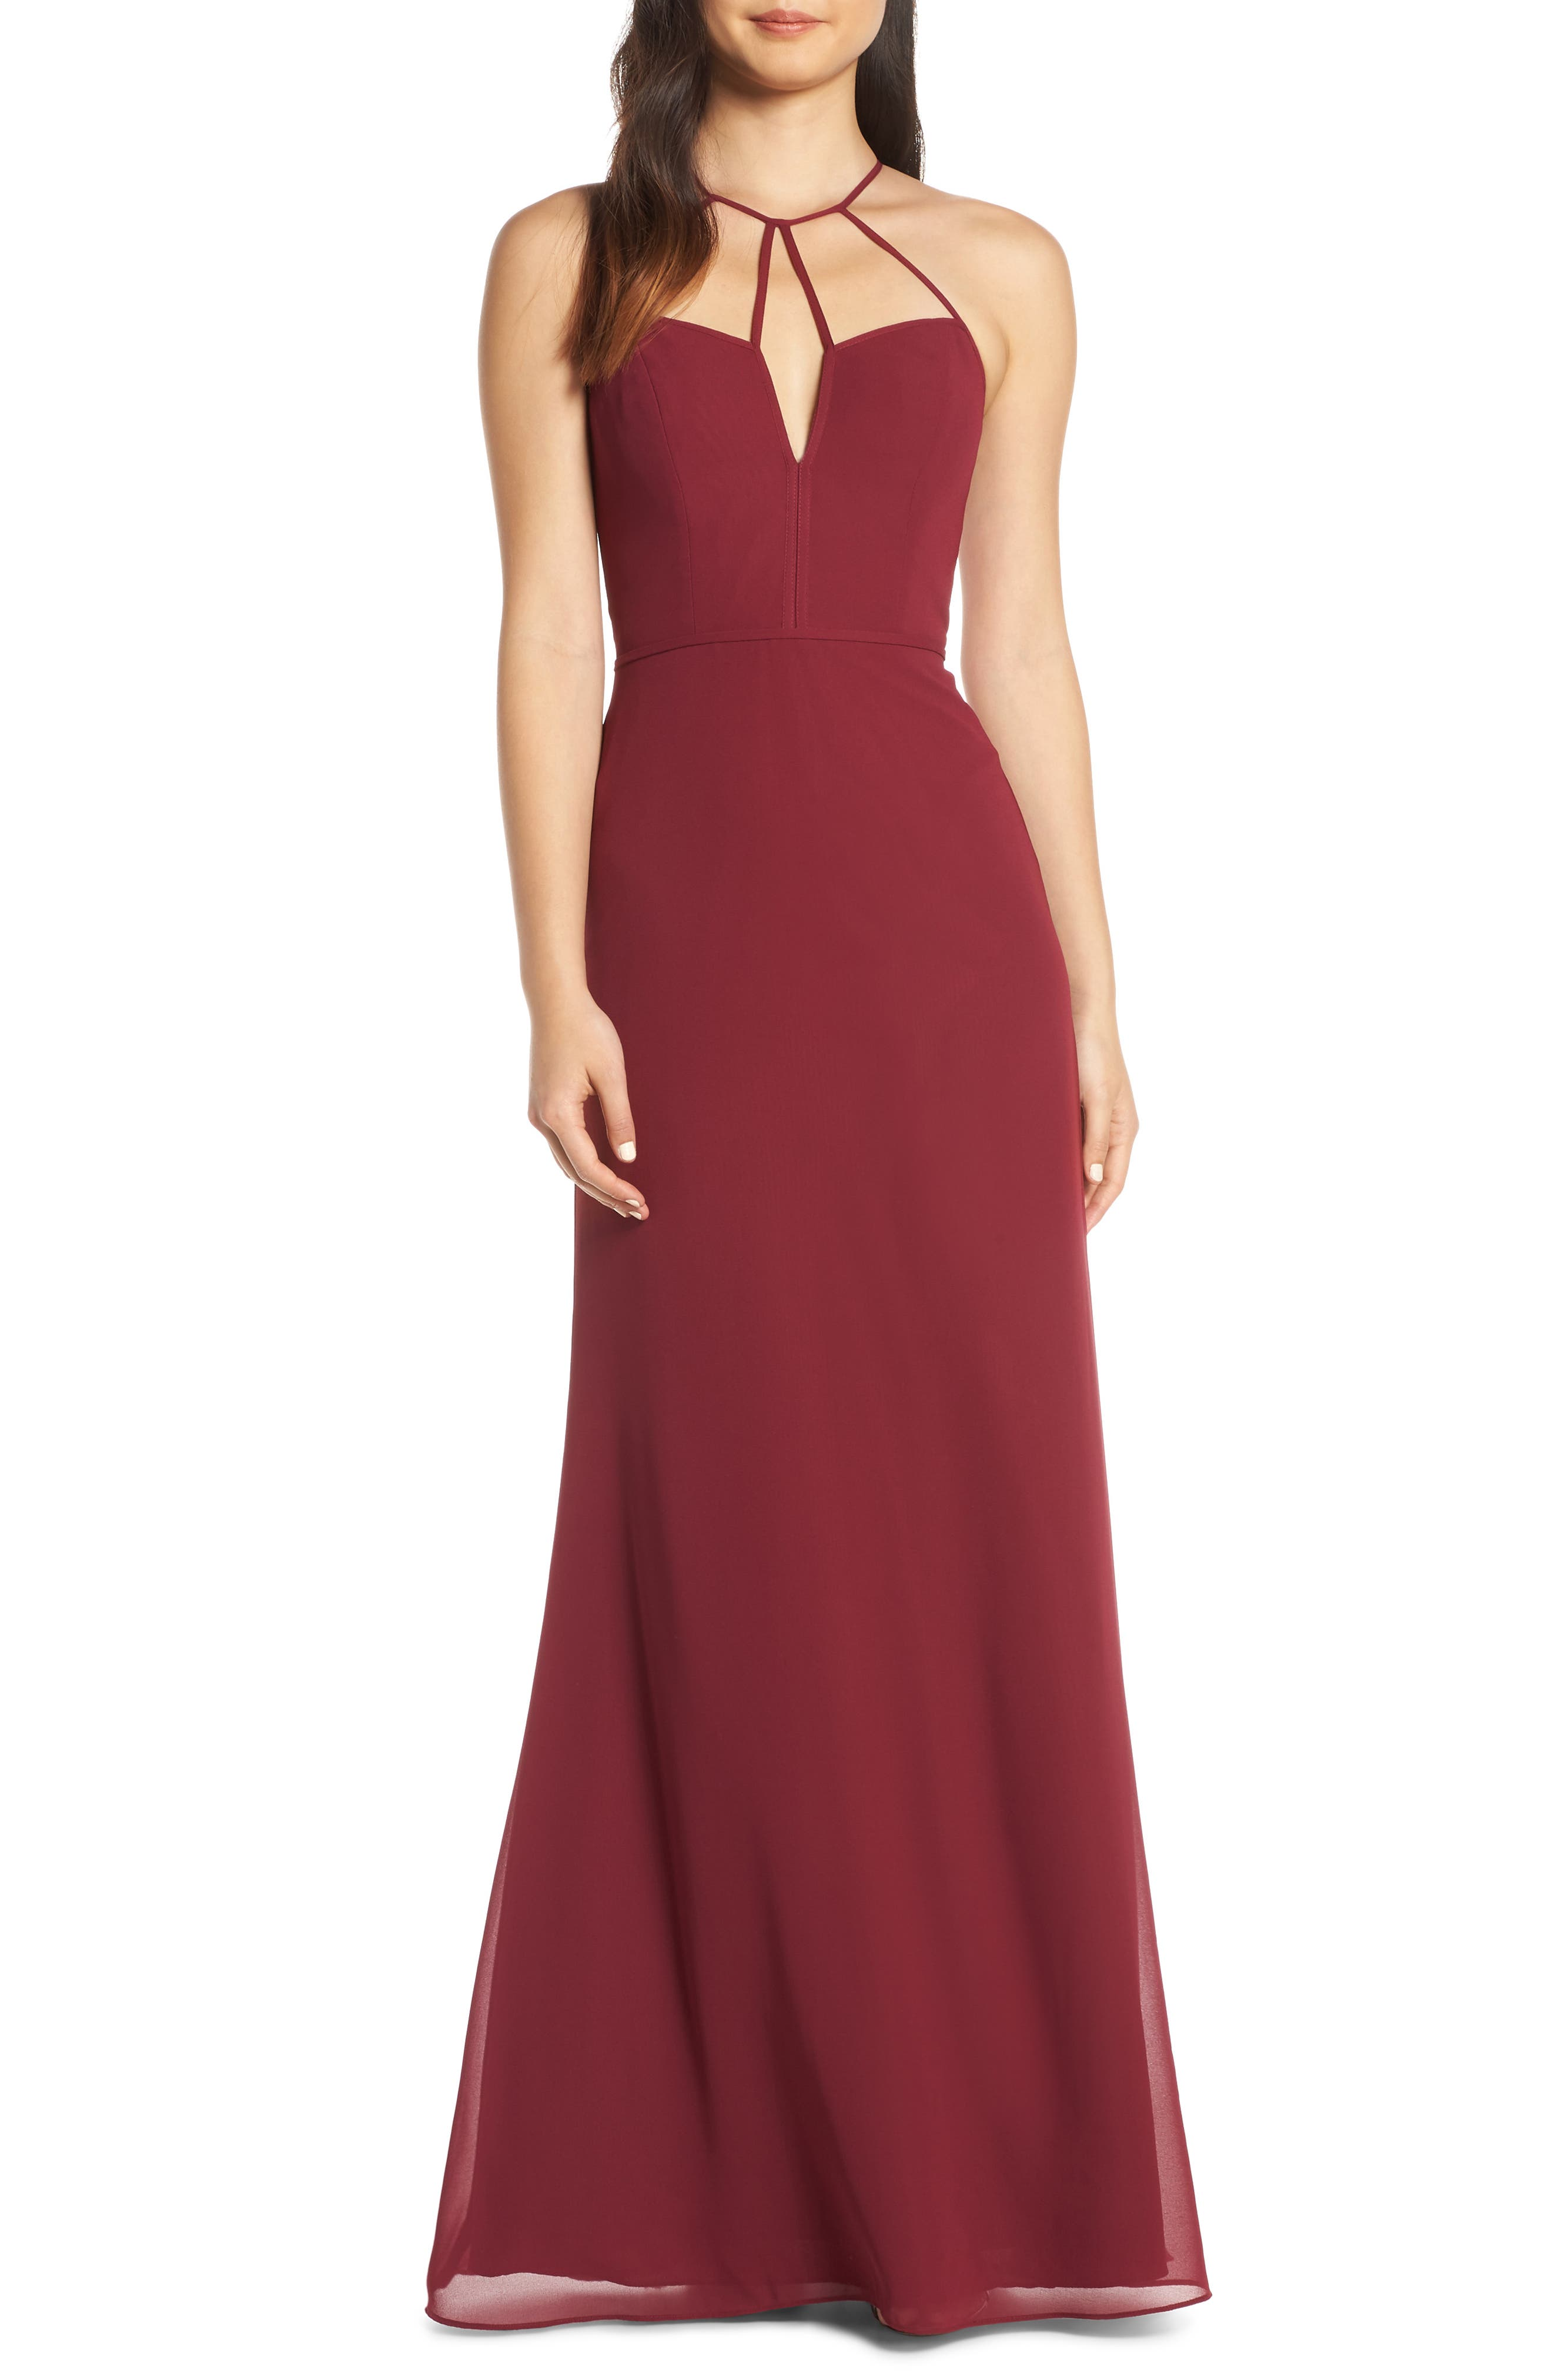 Hayley Paige Occasions Strappy Detail Chiffon Evening Dress, Burgundy